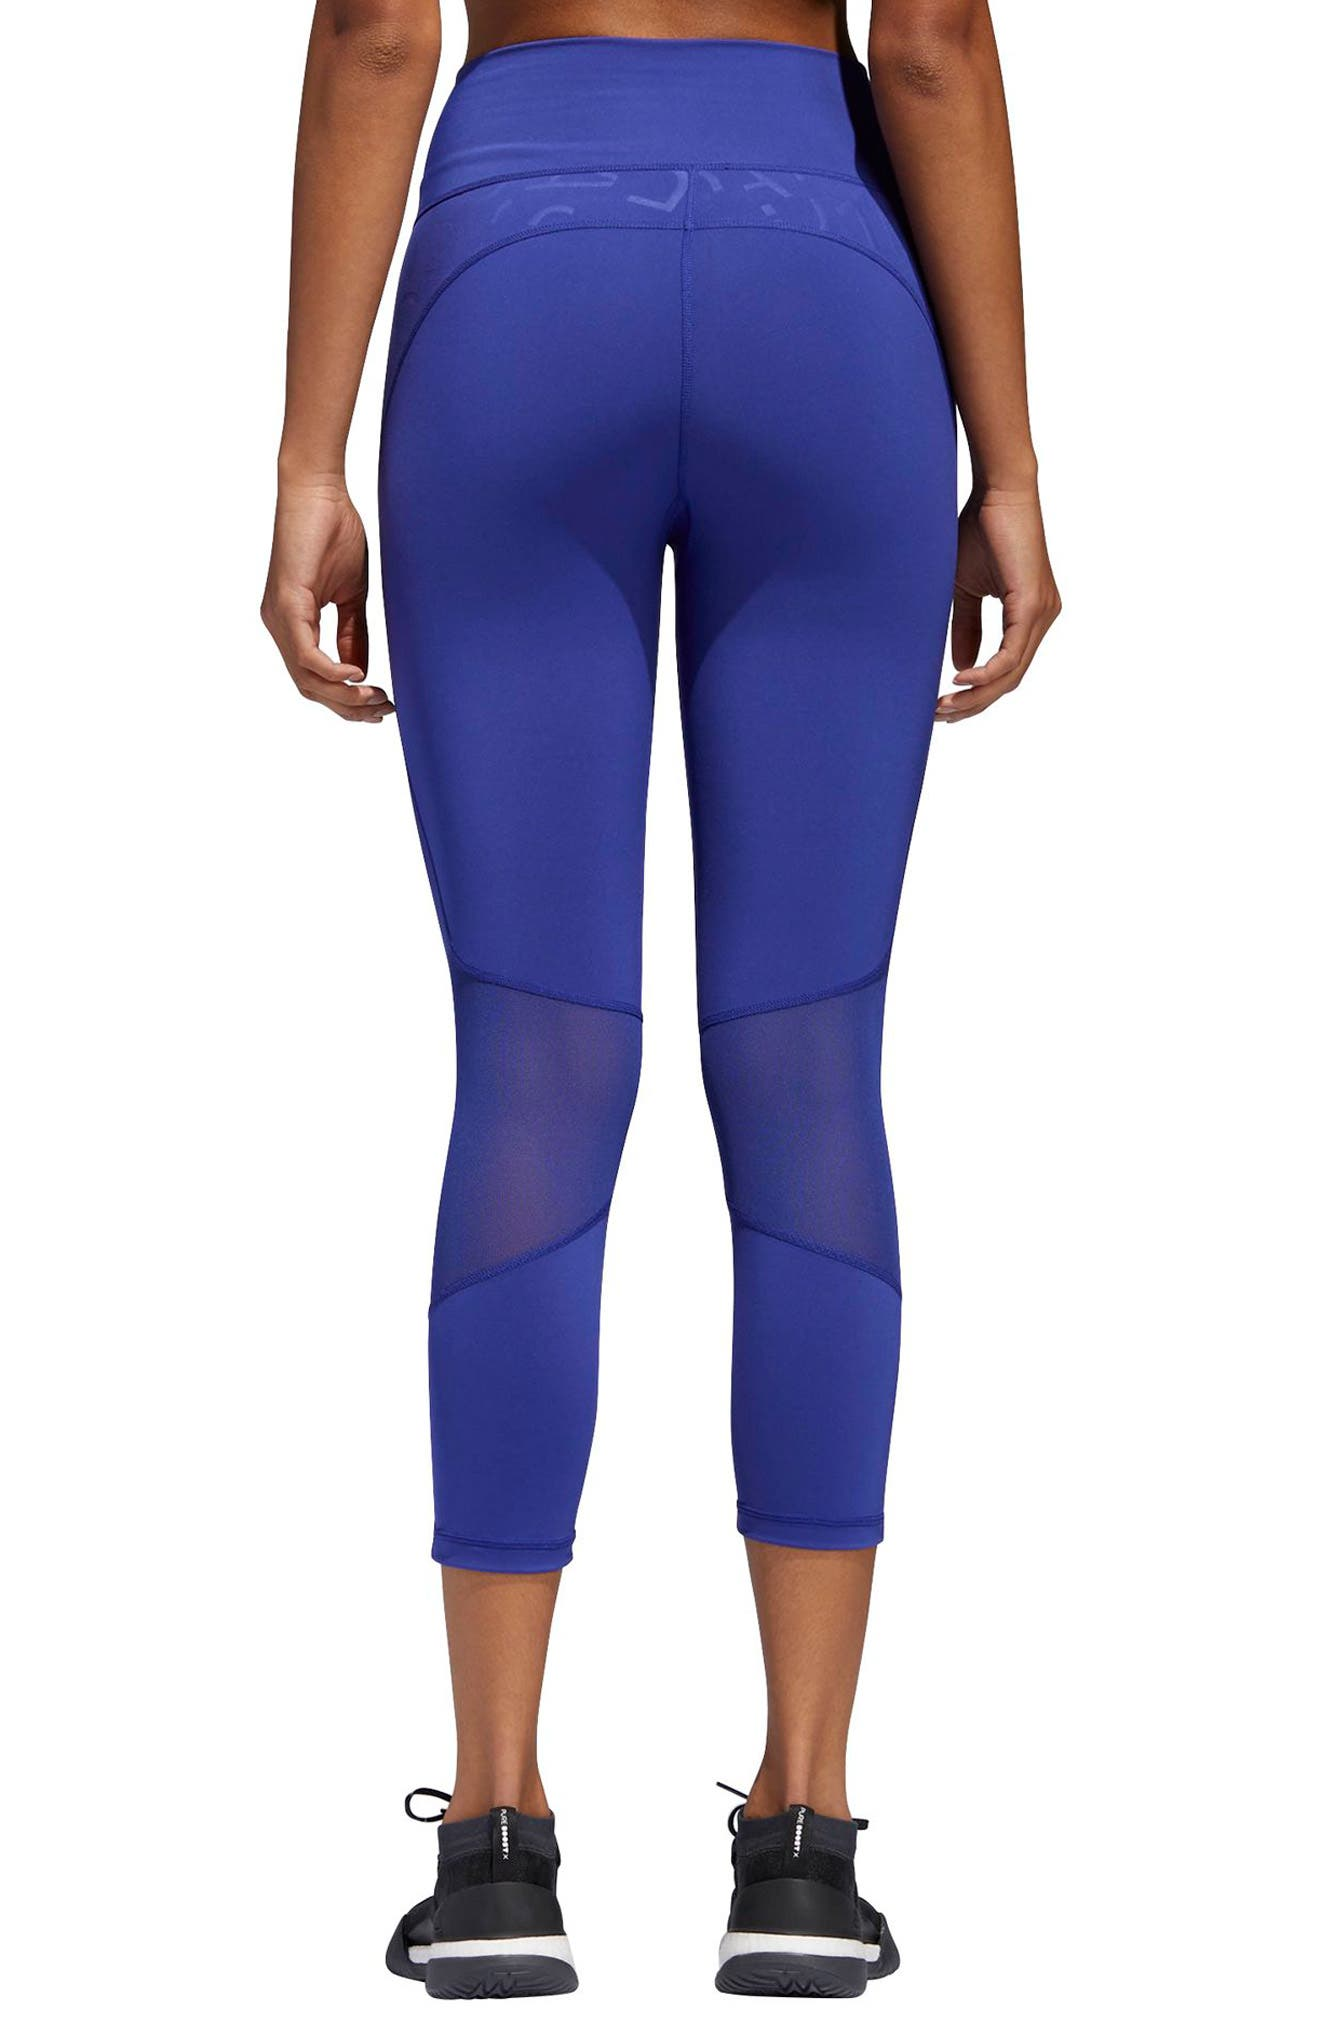 Adihack Crop Tights,                             Alternate thumbnail 2, color,                             500